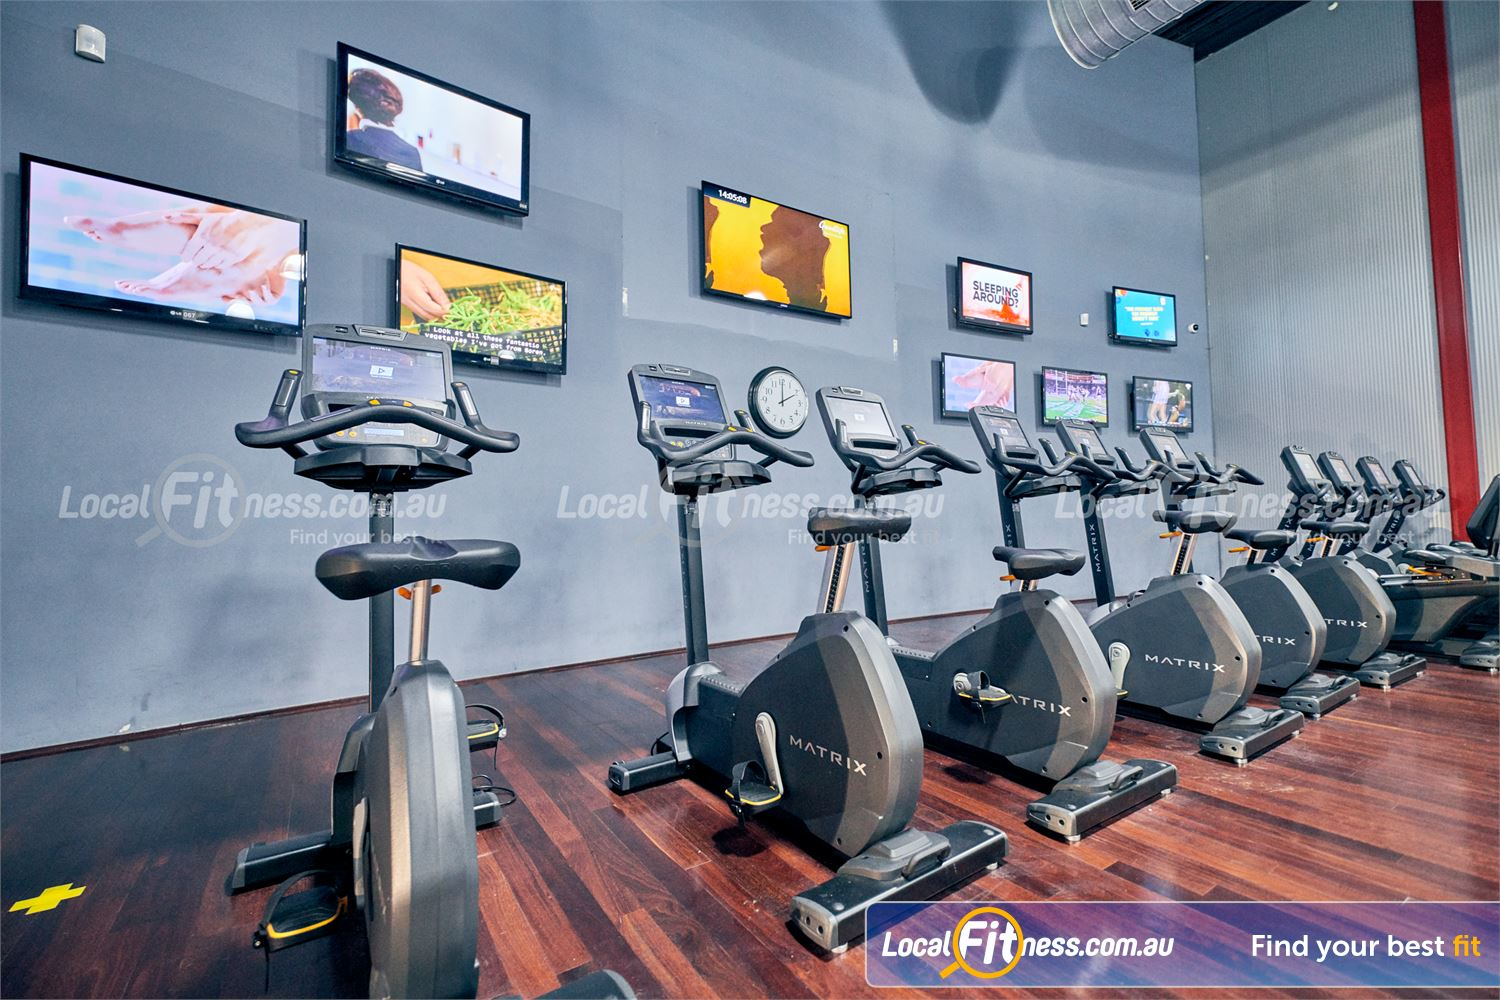 Goodlife Health Clubs Near Langwarrin Tune into your favourite shows on our entertainment wall or personal screen.